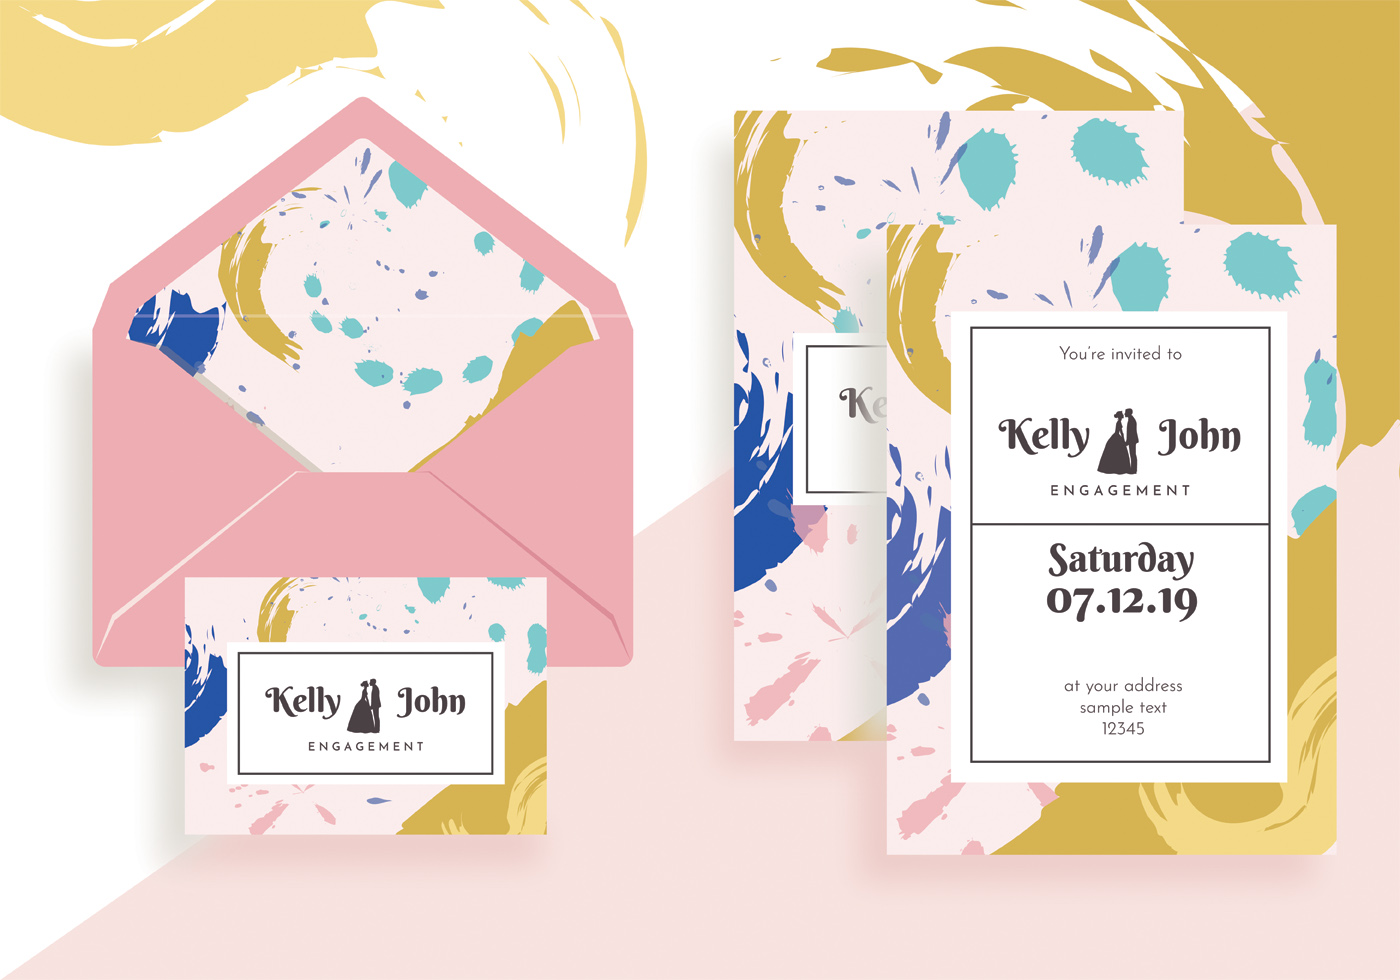 Engagement Invitation Template Vector Design - Download Free